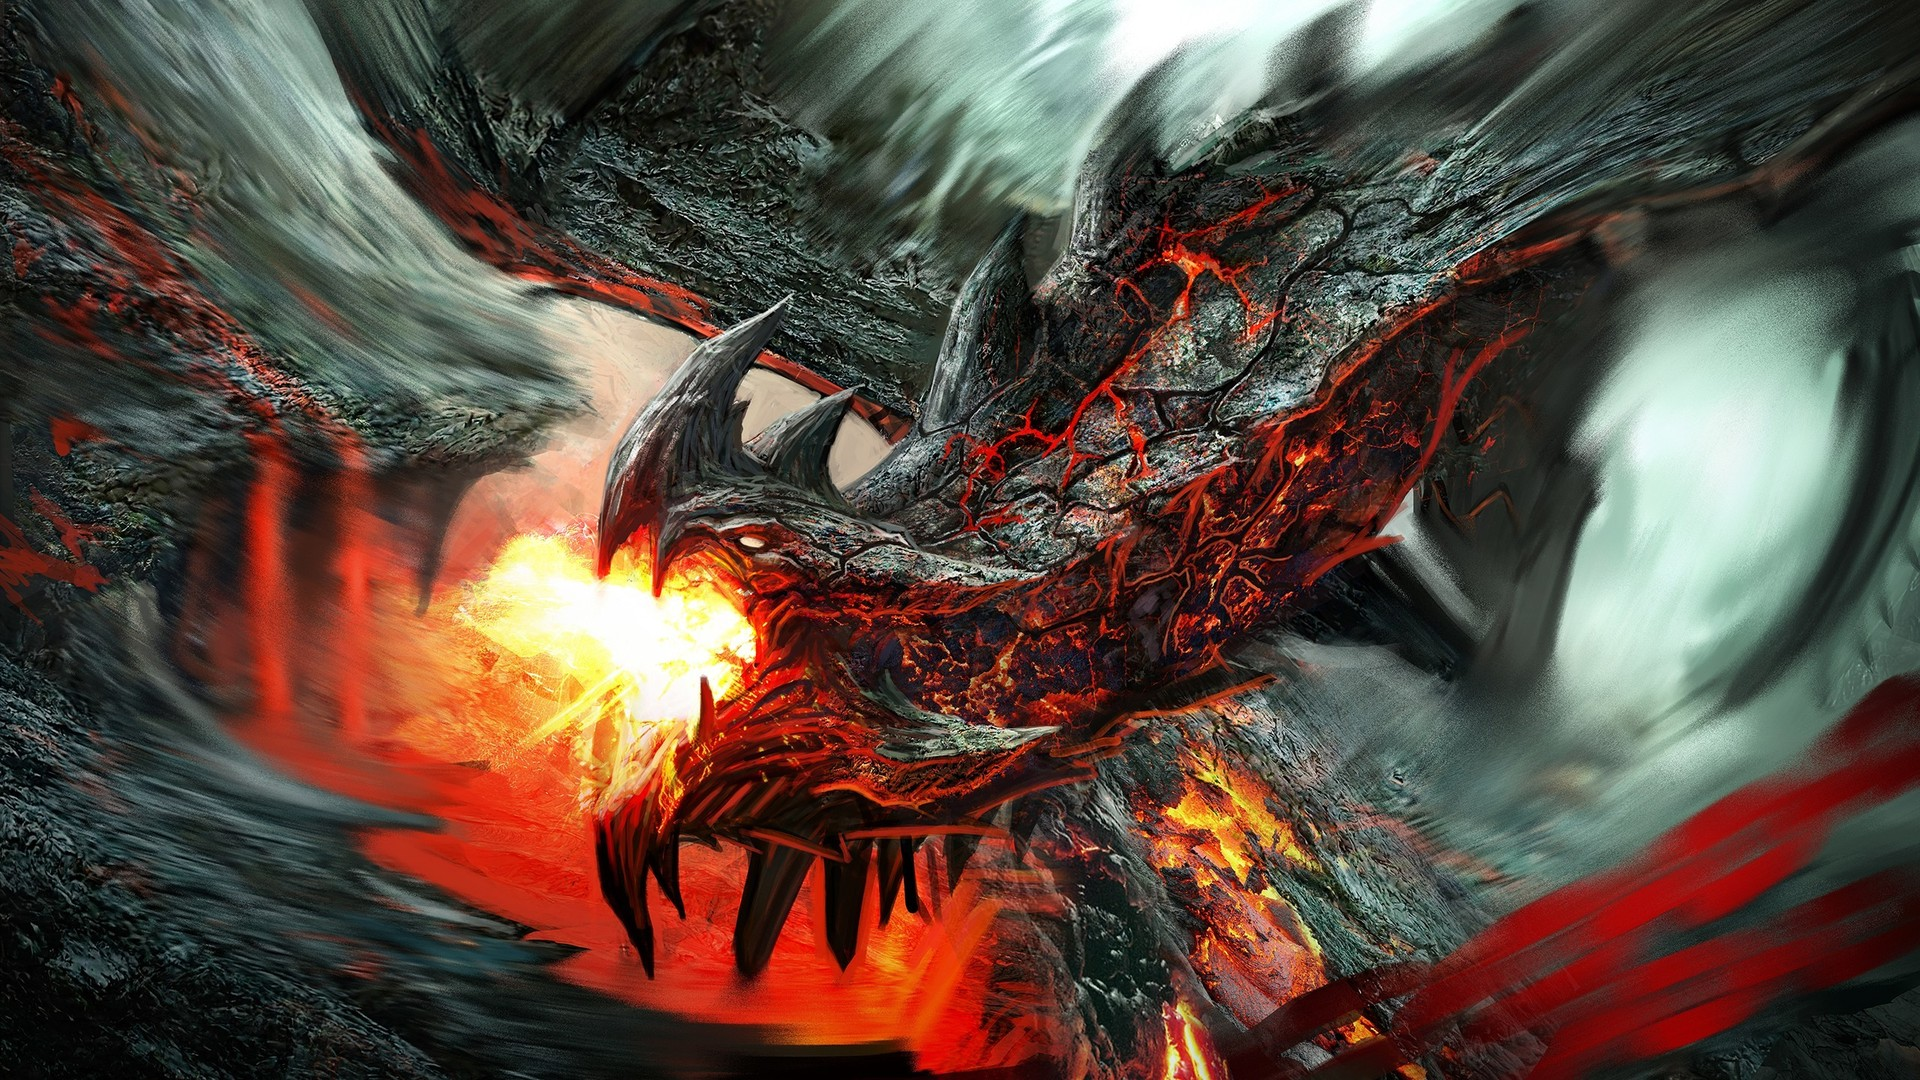 Hd wallpaper dragon - Dragon Fans Out There I Found These Amazingly Cool Dragon Wallpapers